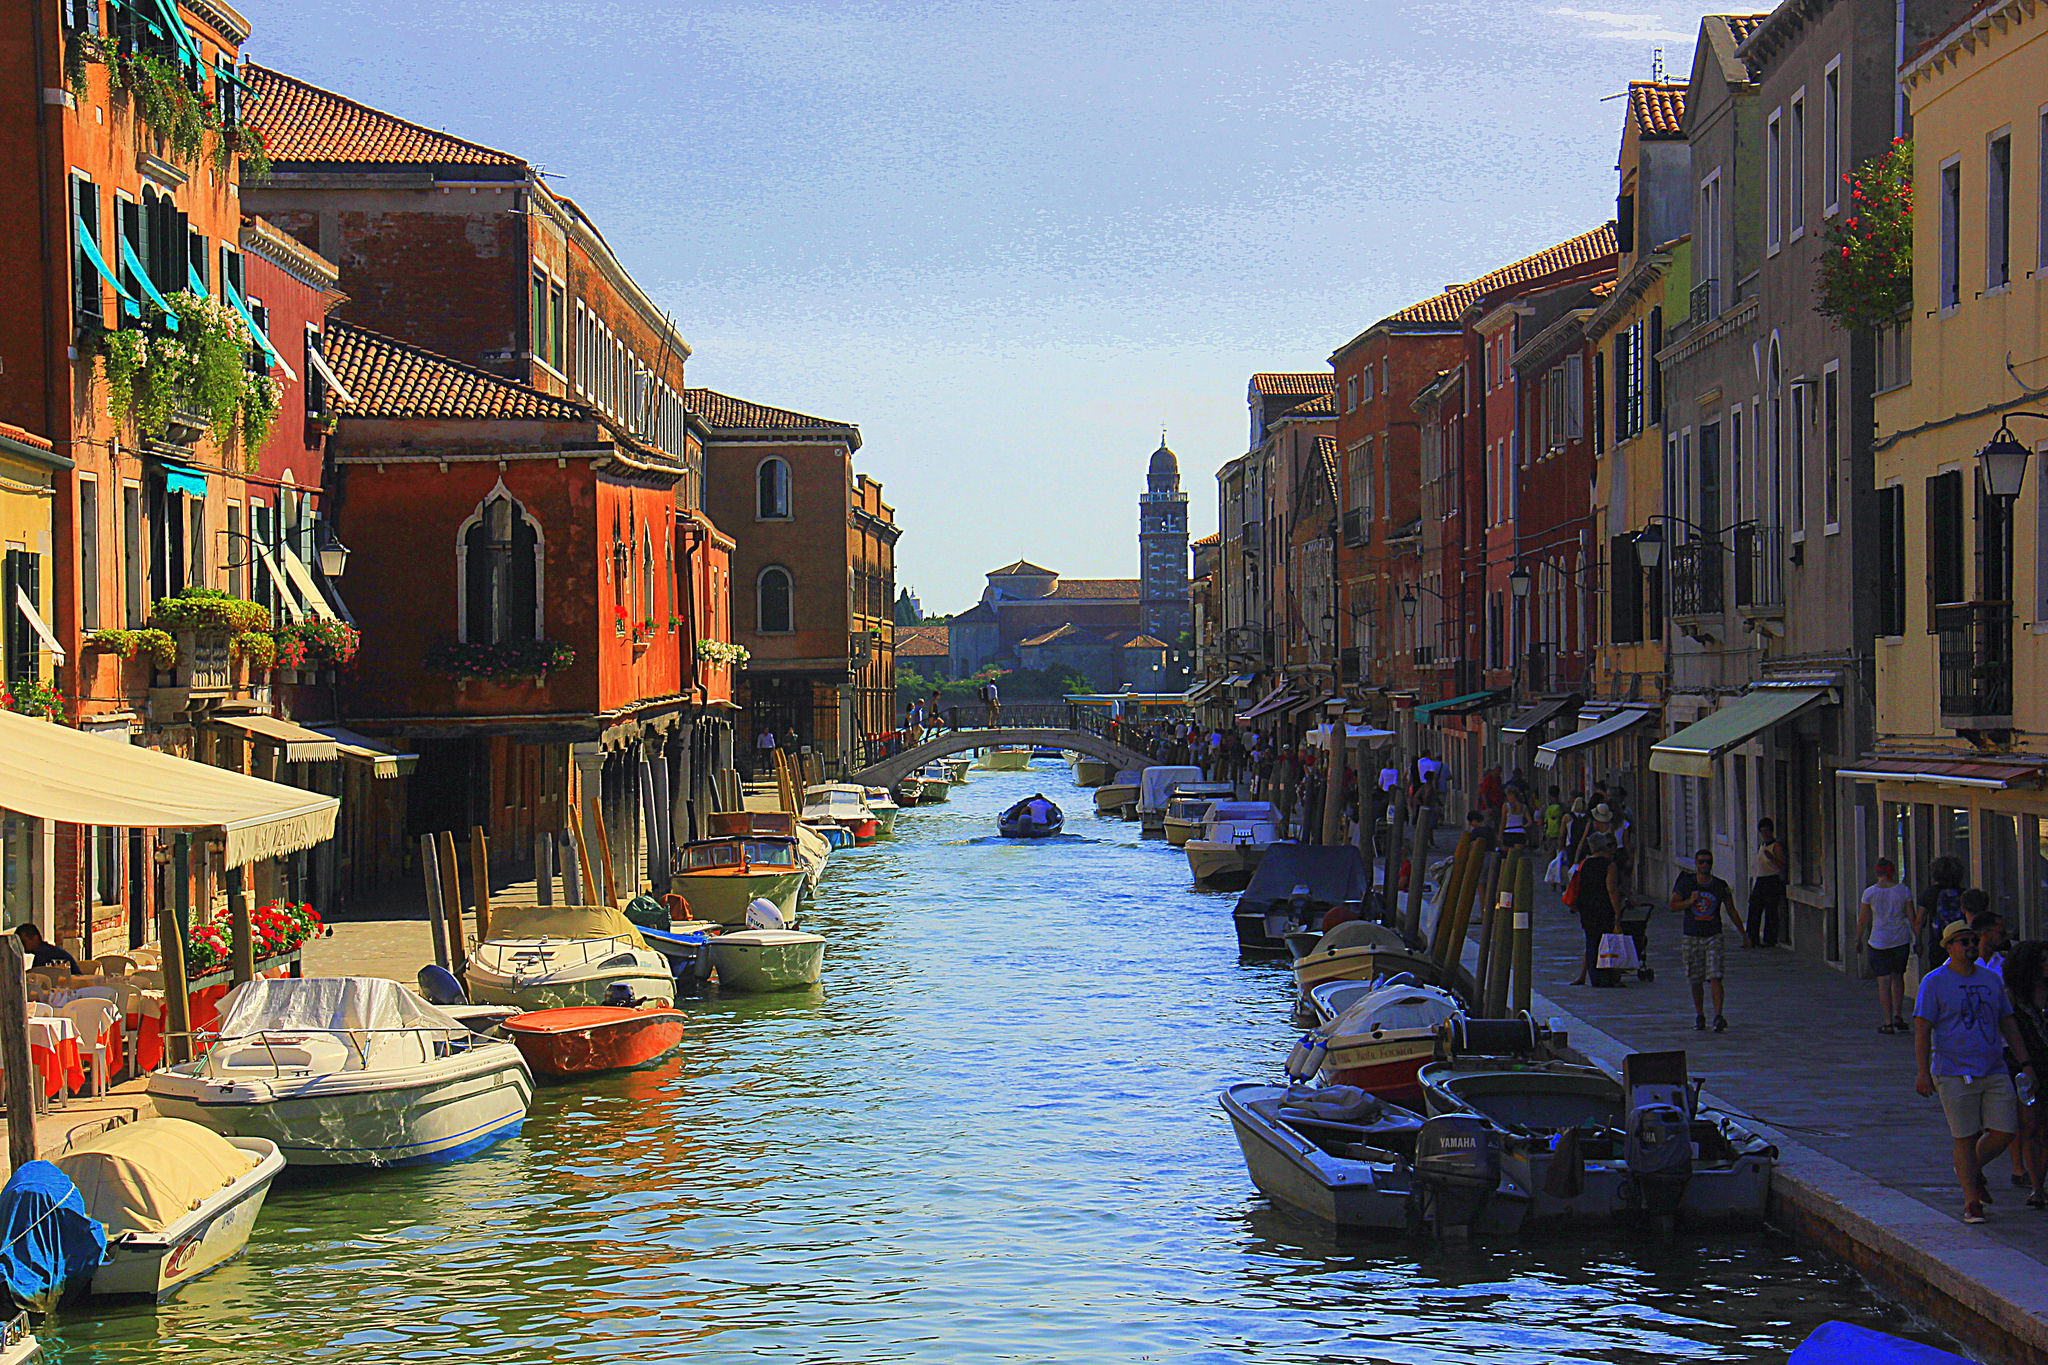 A beautiful view of Murano